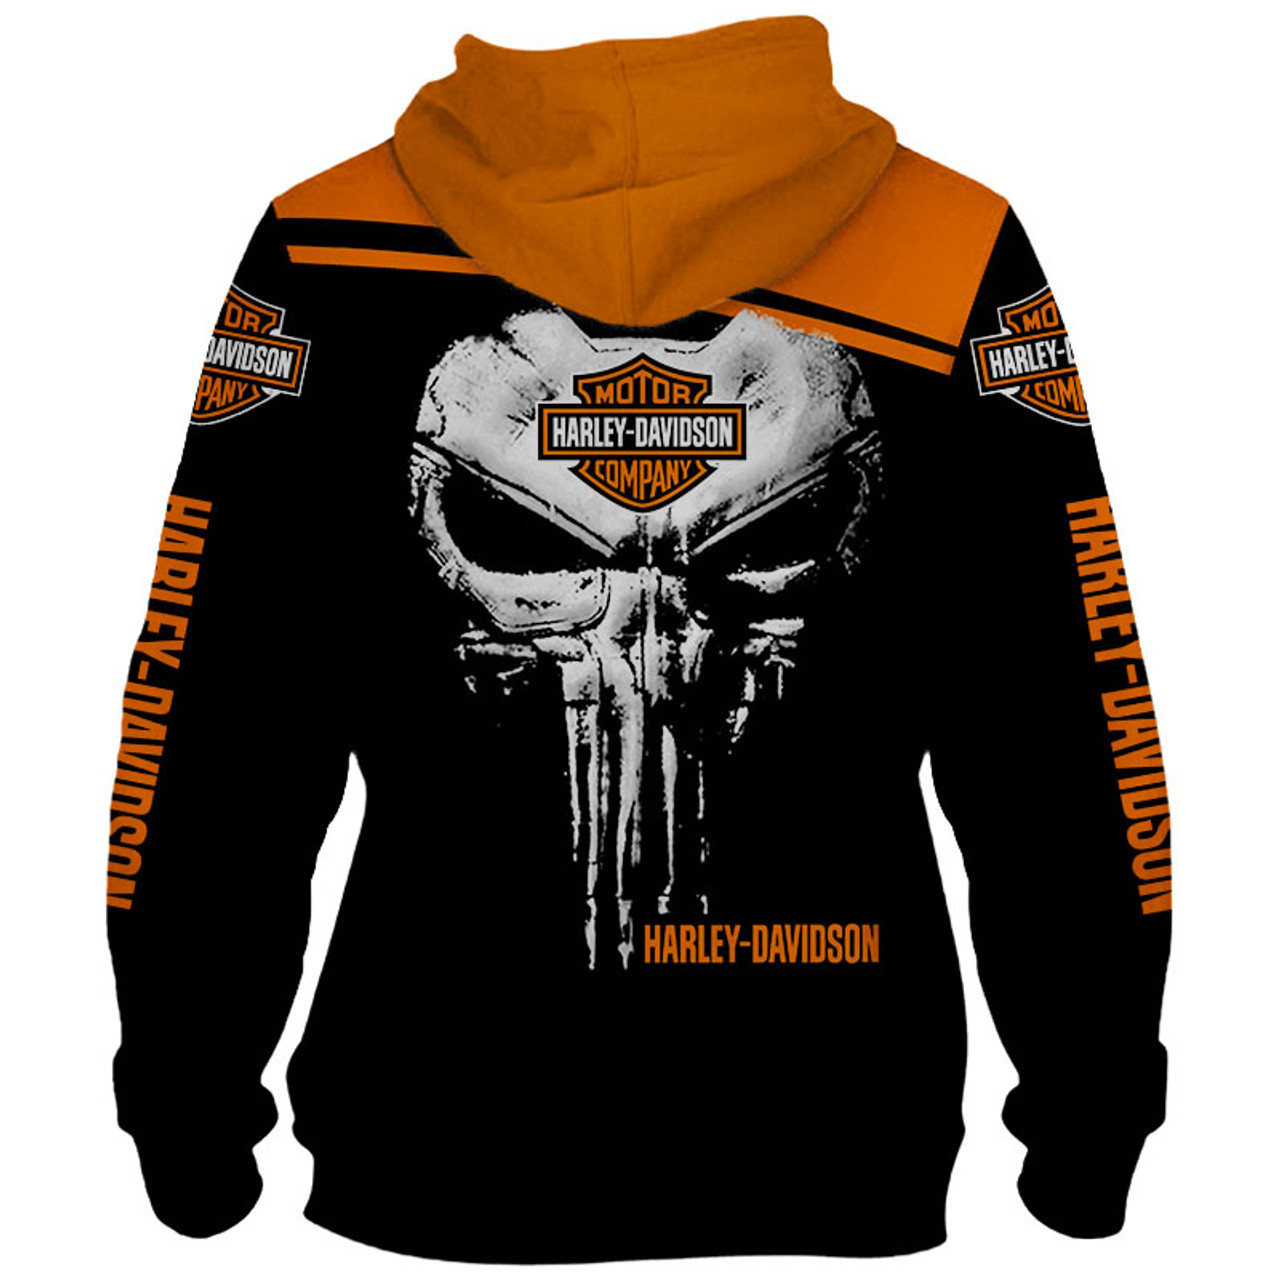 **(OFFICIAL HARLEY DAVIDSON MOTORCYCLE PULLOVER HOODIESCUSTOM DETAILED 3D GRAPHIC PRINTED PUNISHER SKULL DESIGNFEATURING OFFICIAL CUSTOM HARLEY 3D L